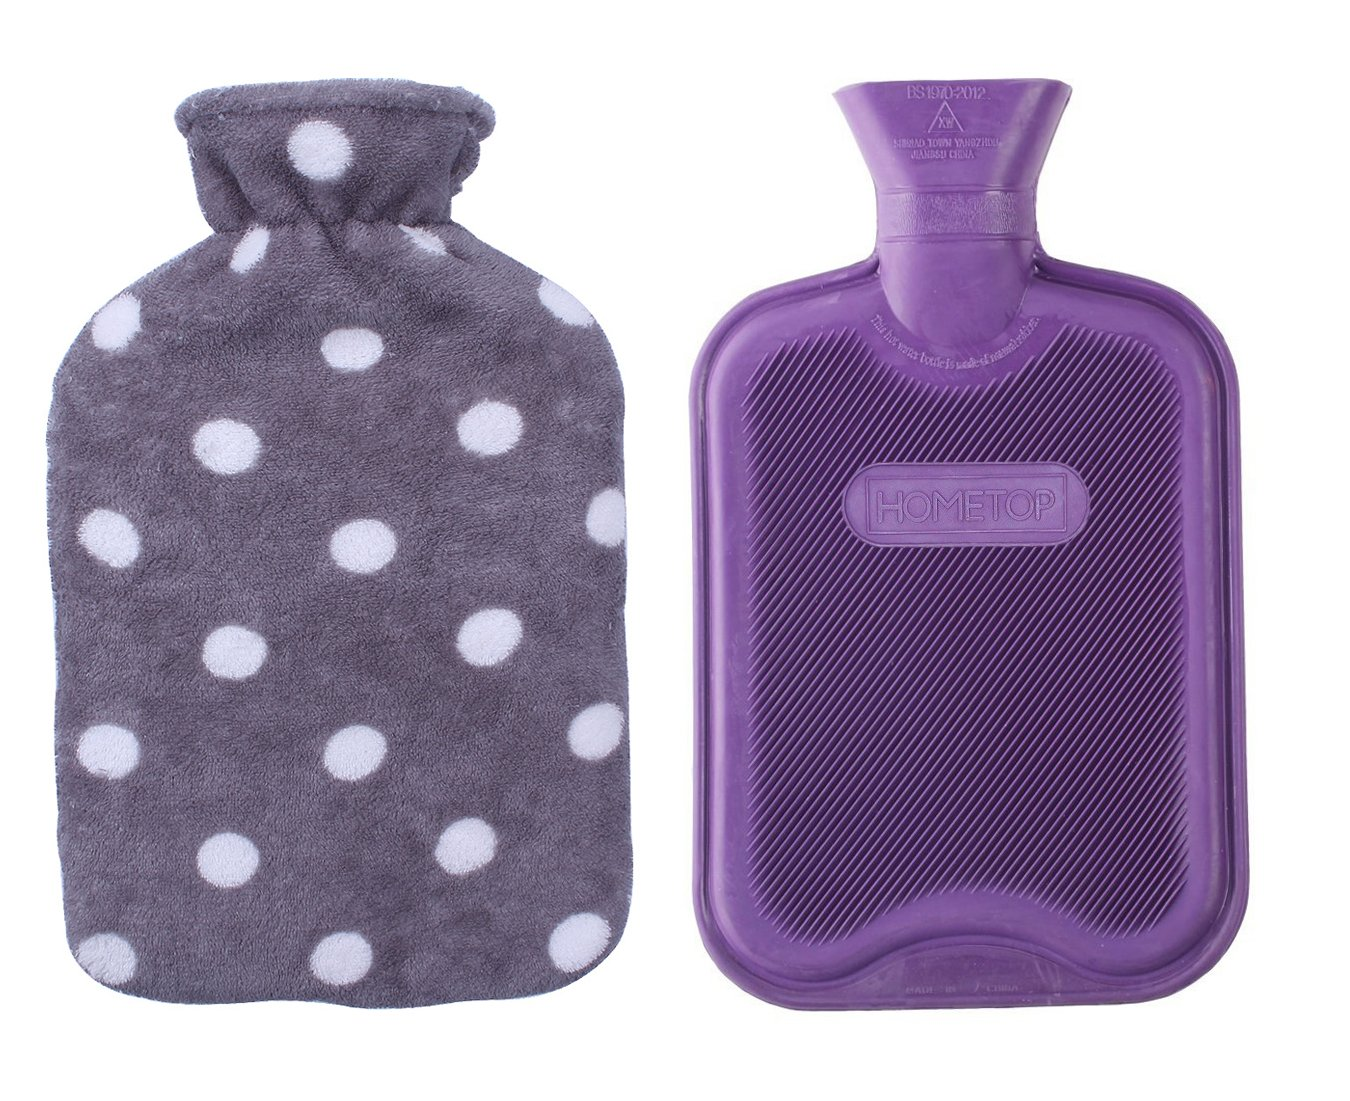 HomeTop Premium Classic Rubber Hot or Cold Water Bottle with Soft Fleece Cover (2 Liters, Purple/Gray Polka Dot)